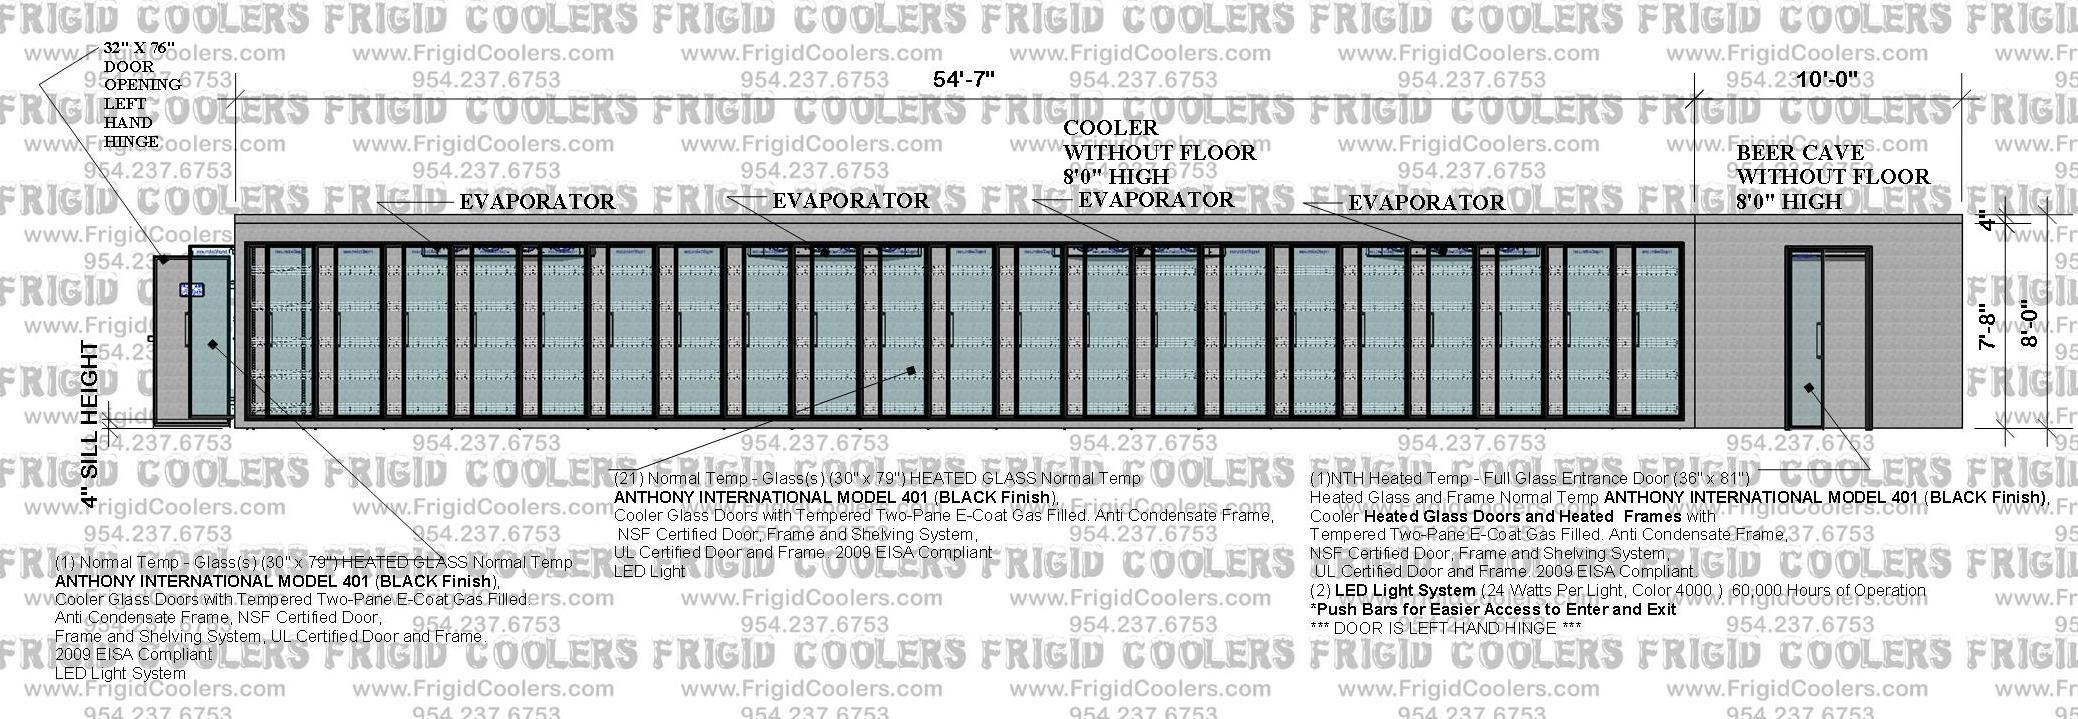 L-SHAPE COOLER AND BEER CAVE 10X64-7X15X10X8 HIGH 21-GDS 30X79 1-GDS 30X79 1-36X81 ENTRACE GLASS DOO